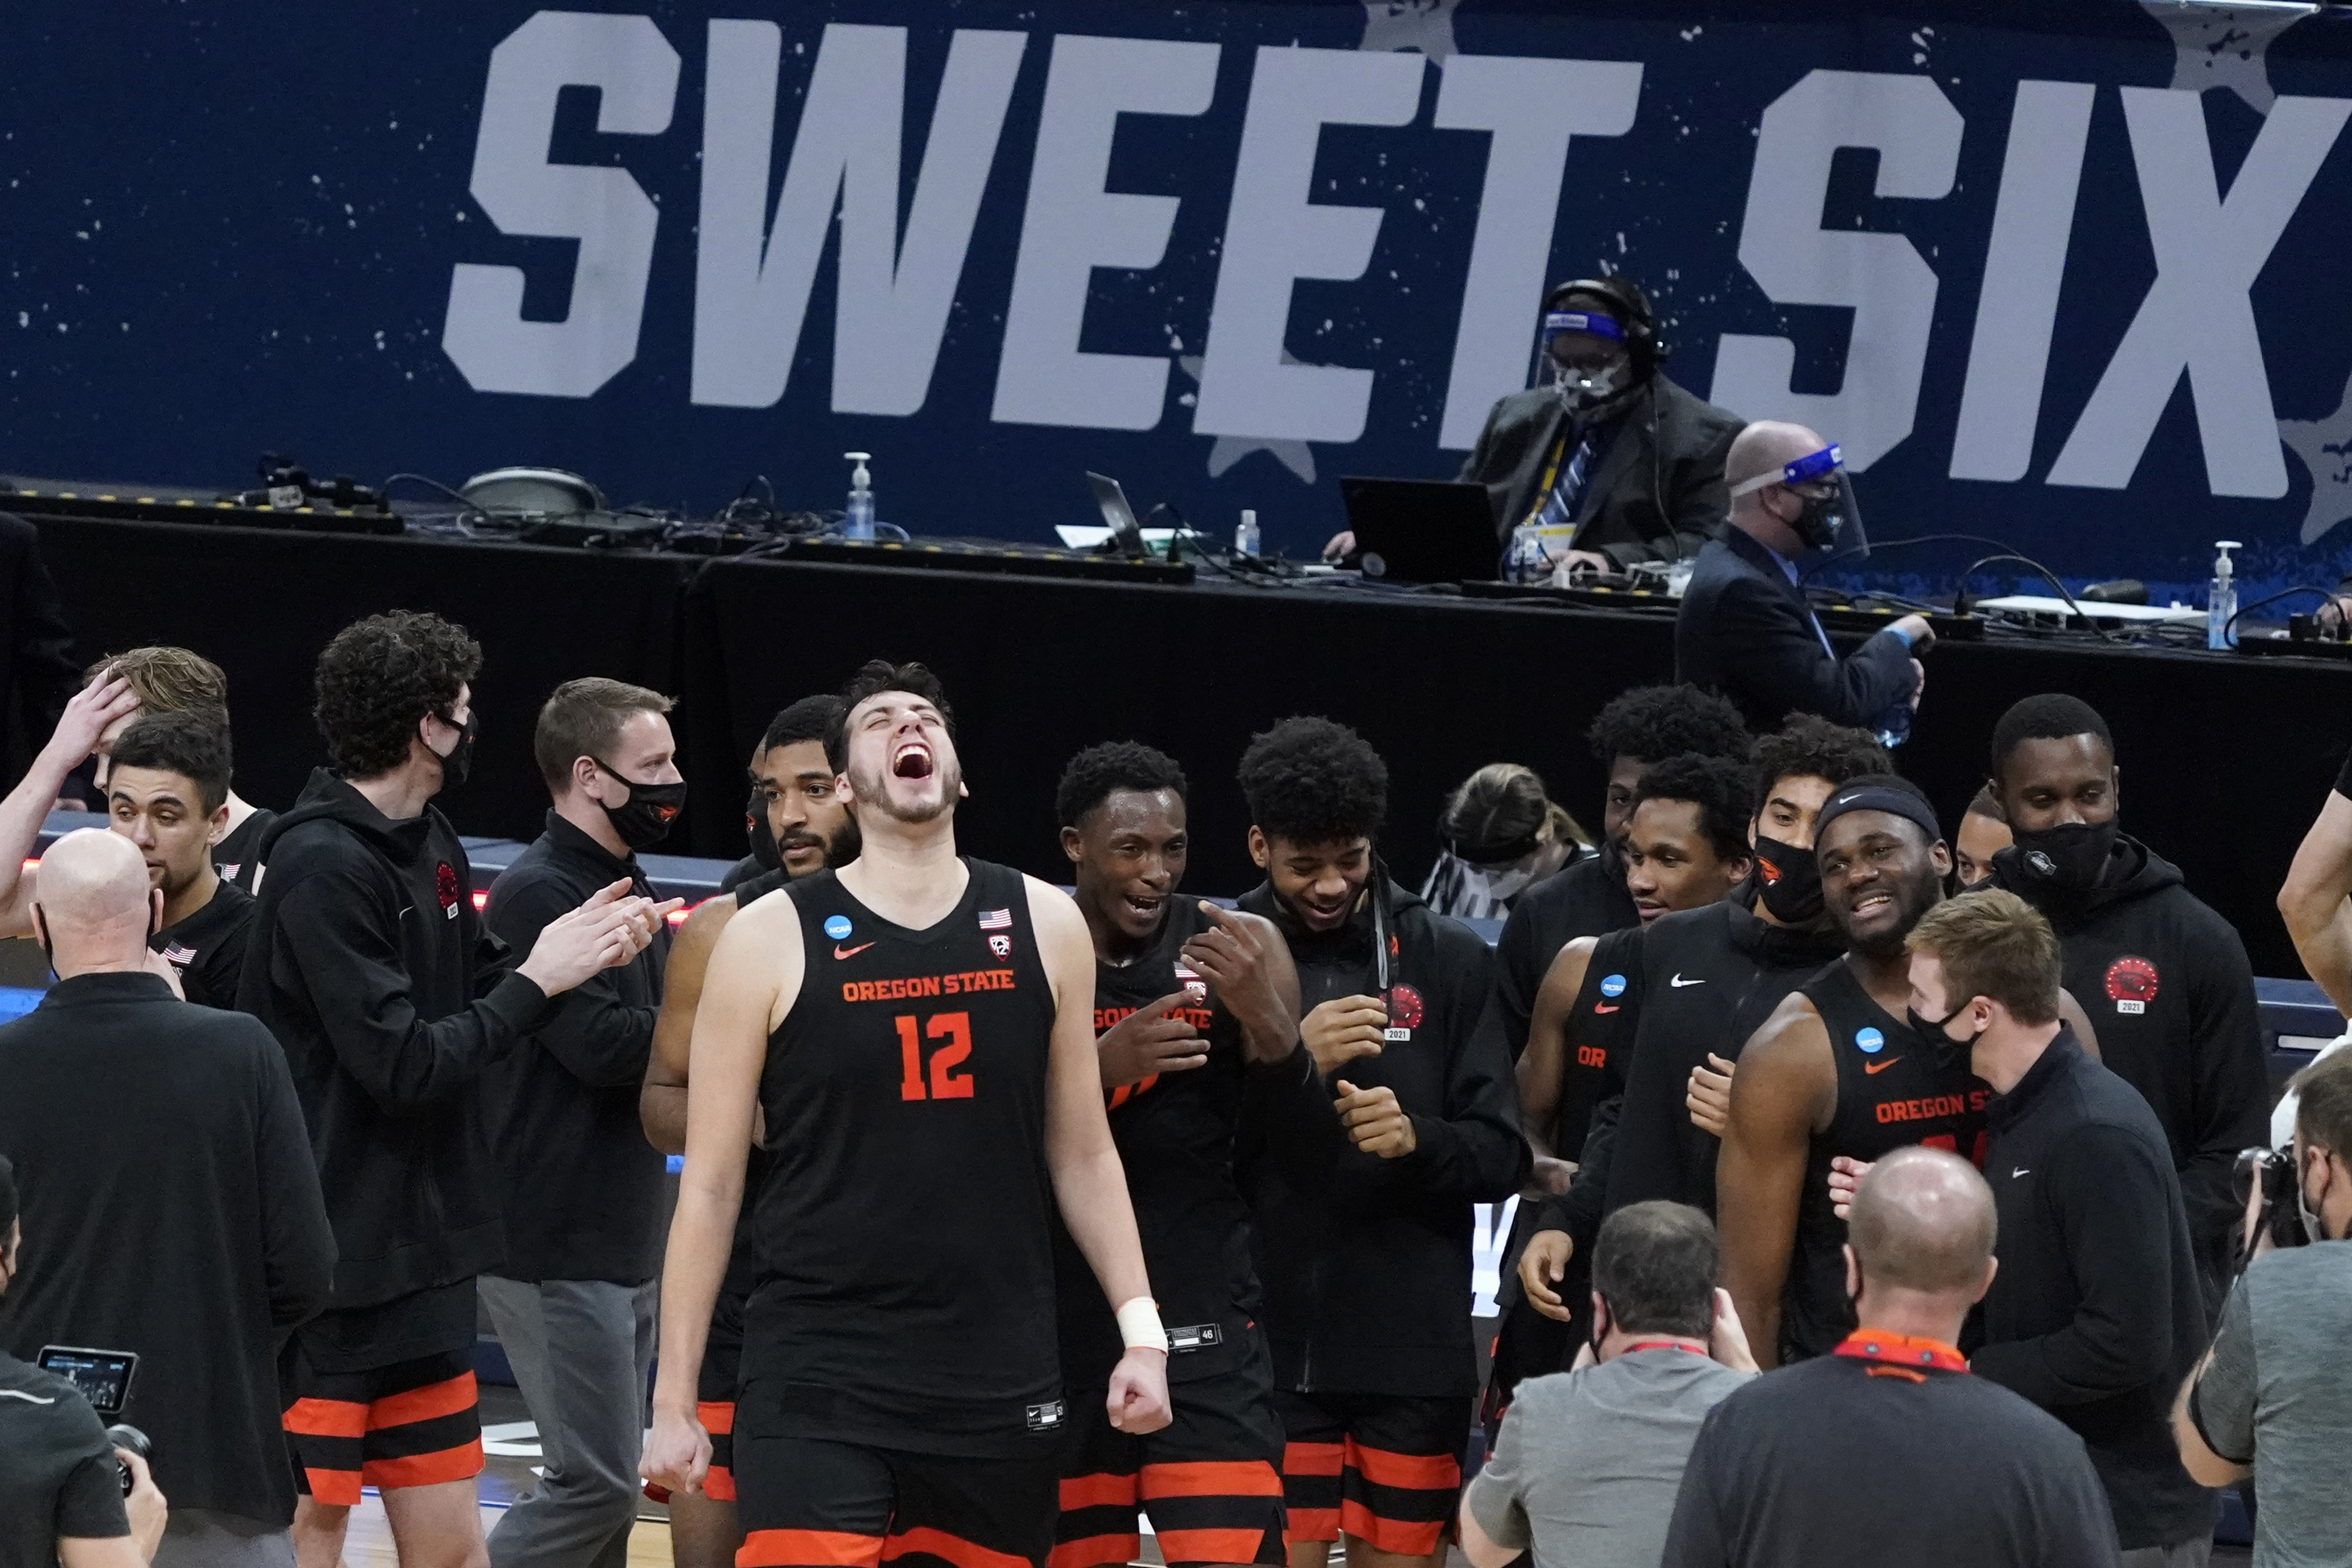 Oregon State basketball Elite Eight bound after 65-58 win over Loyola Chicago